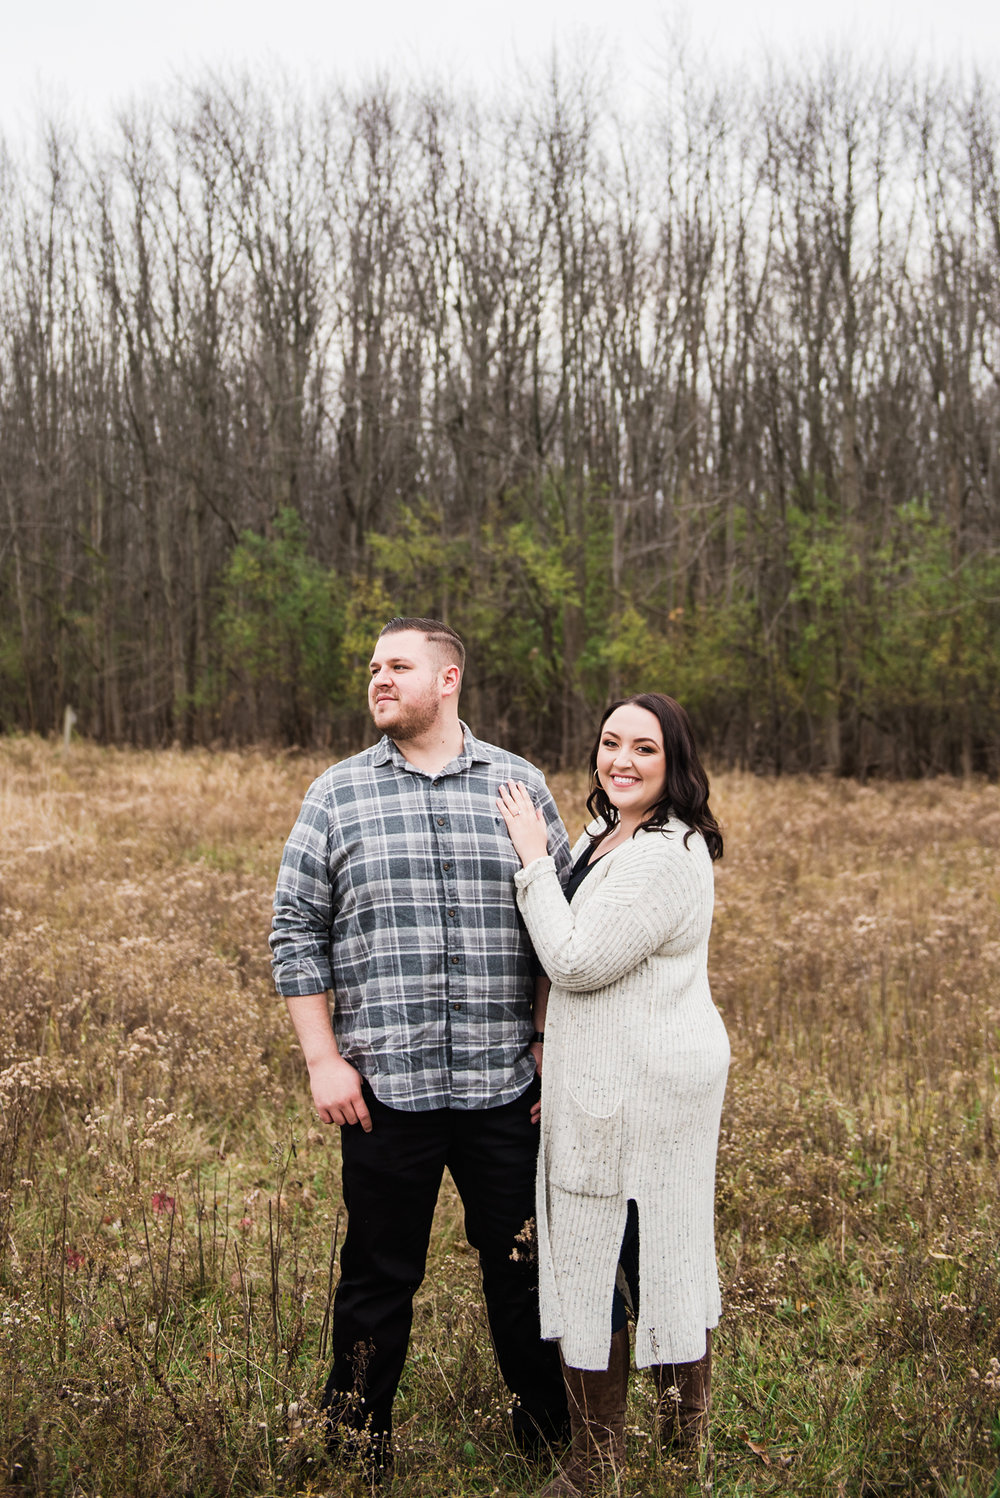 Tinker_Nature_Park_Rochester_Engagement_Session_JILL_STUDIO_Rochester_NY_Photographer_DSC_0446.jpg